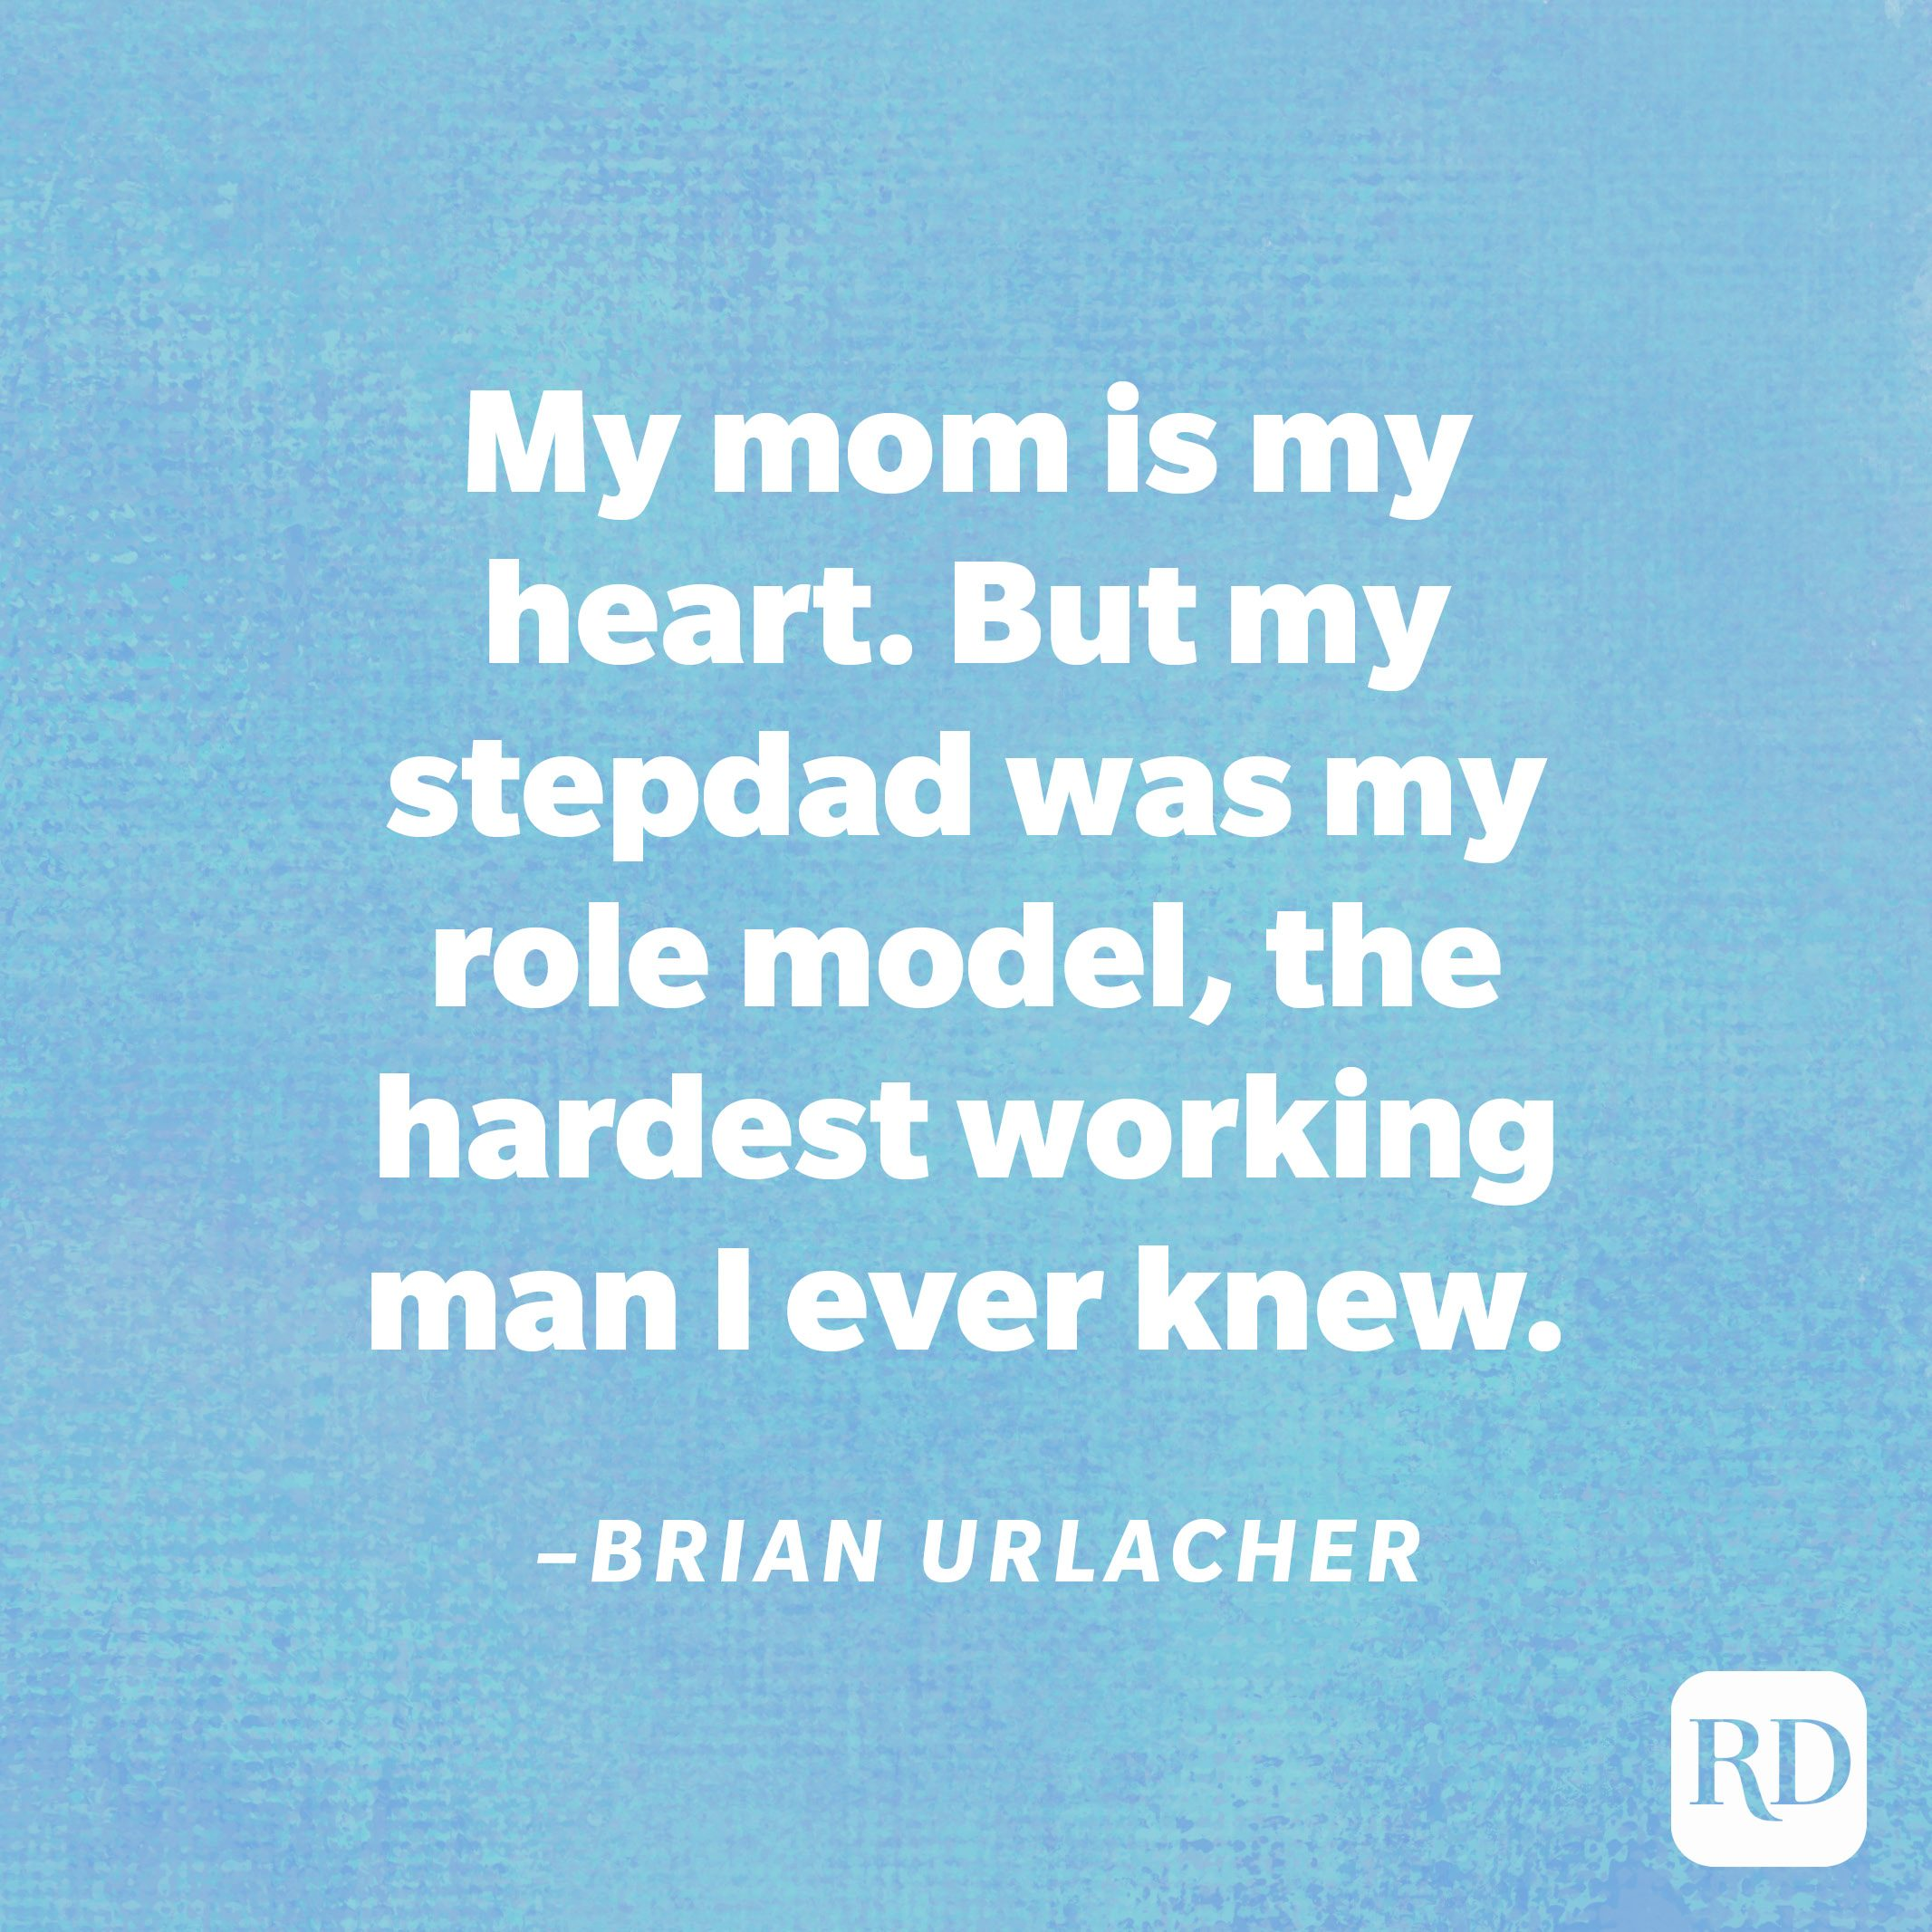 """""""My mom is my heart. But my stepdad was my role model, the hardest working man I ever knew.""""—Brian Urlacher"""